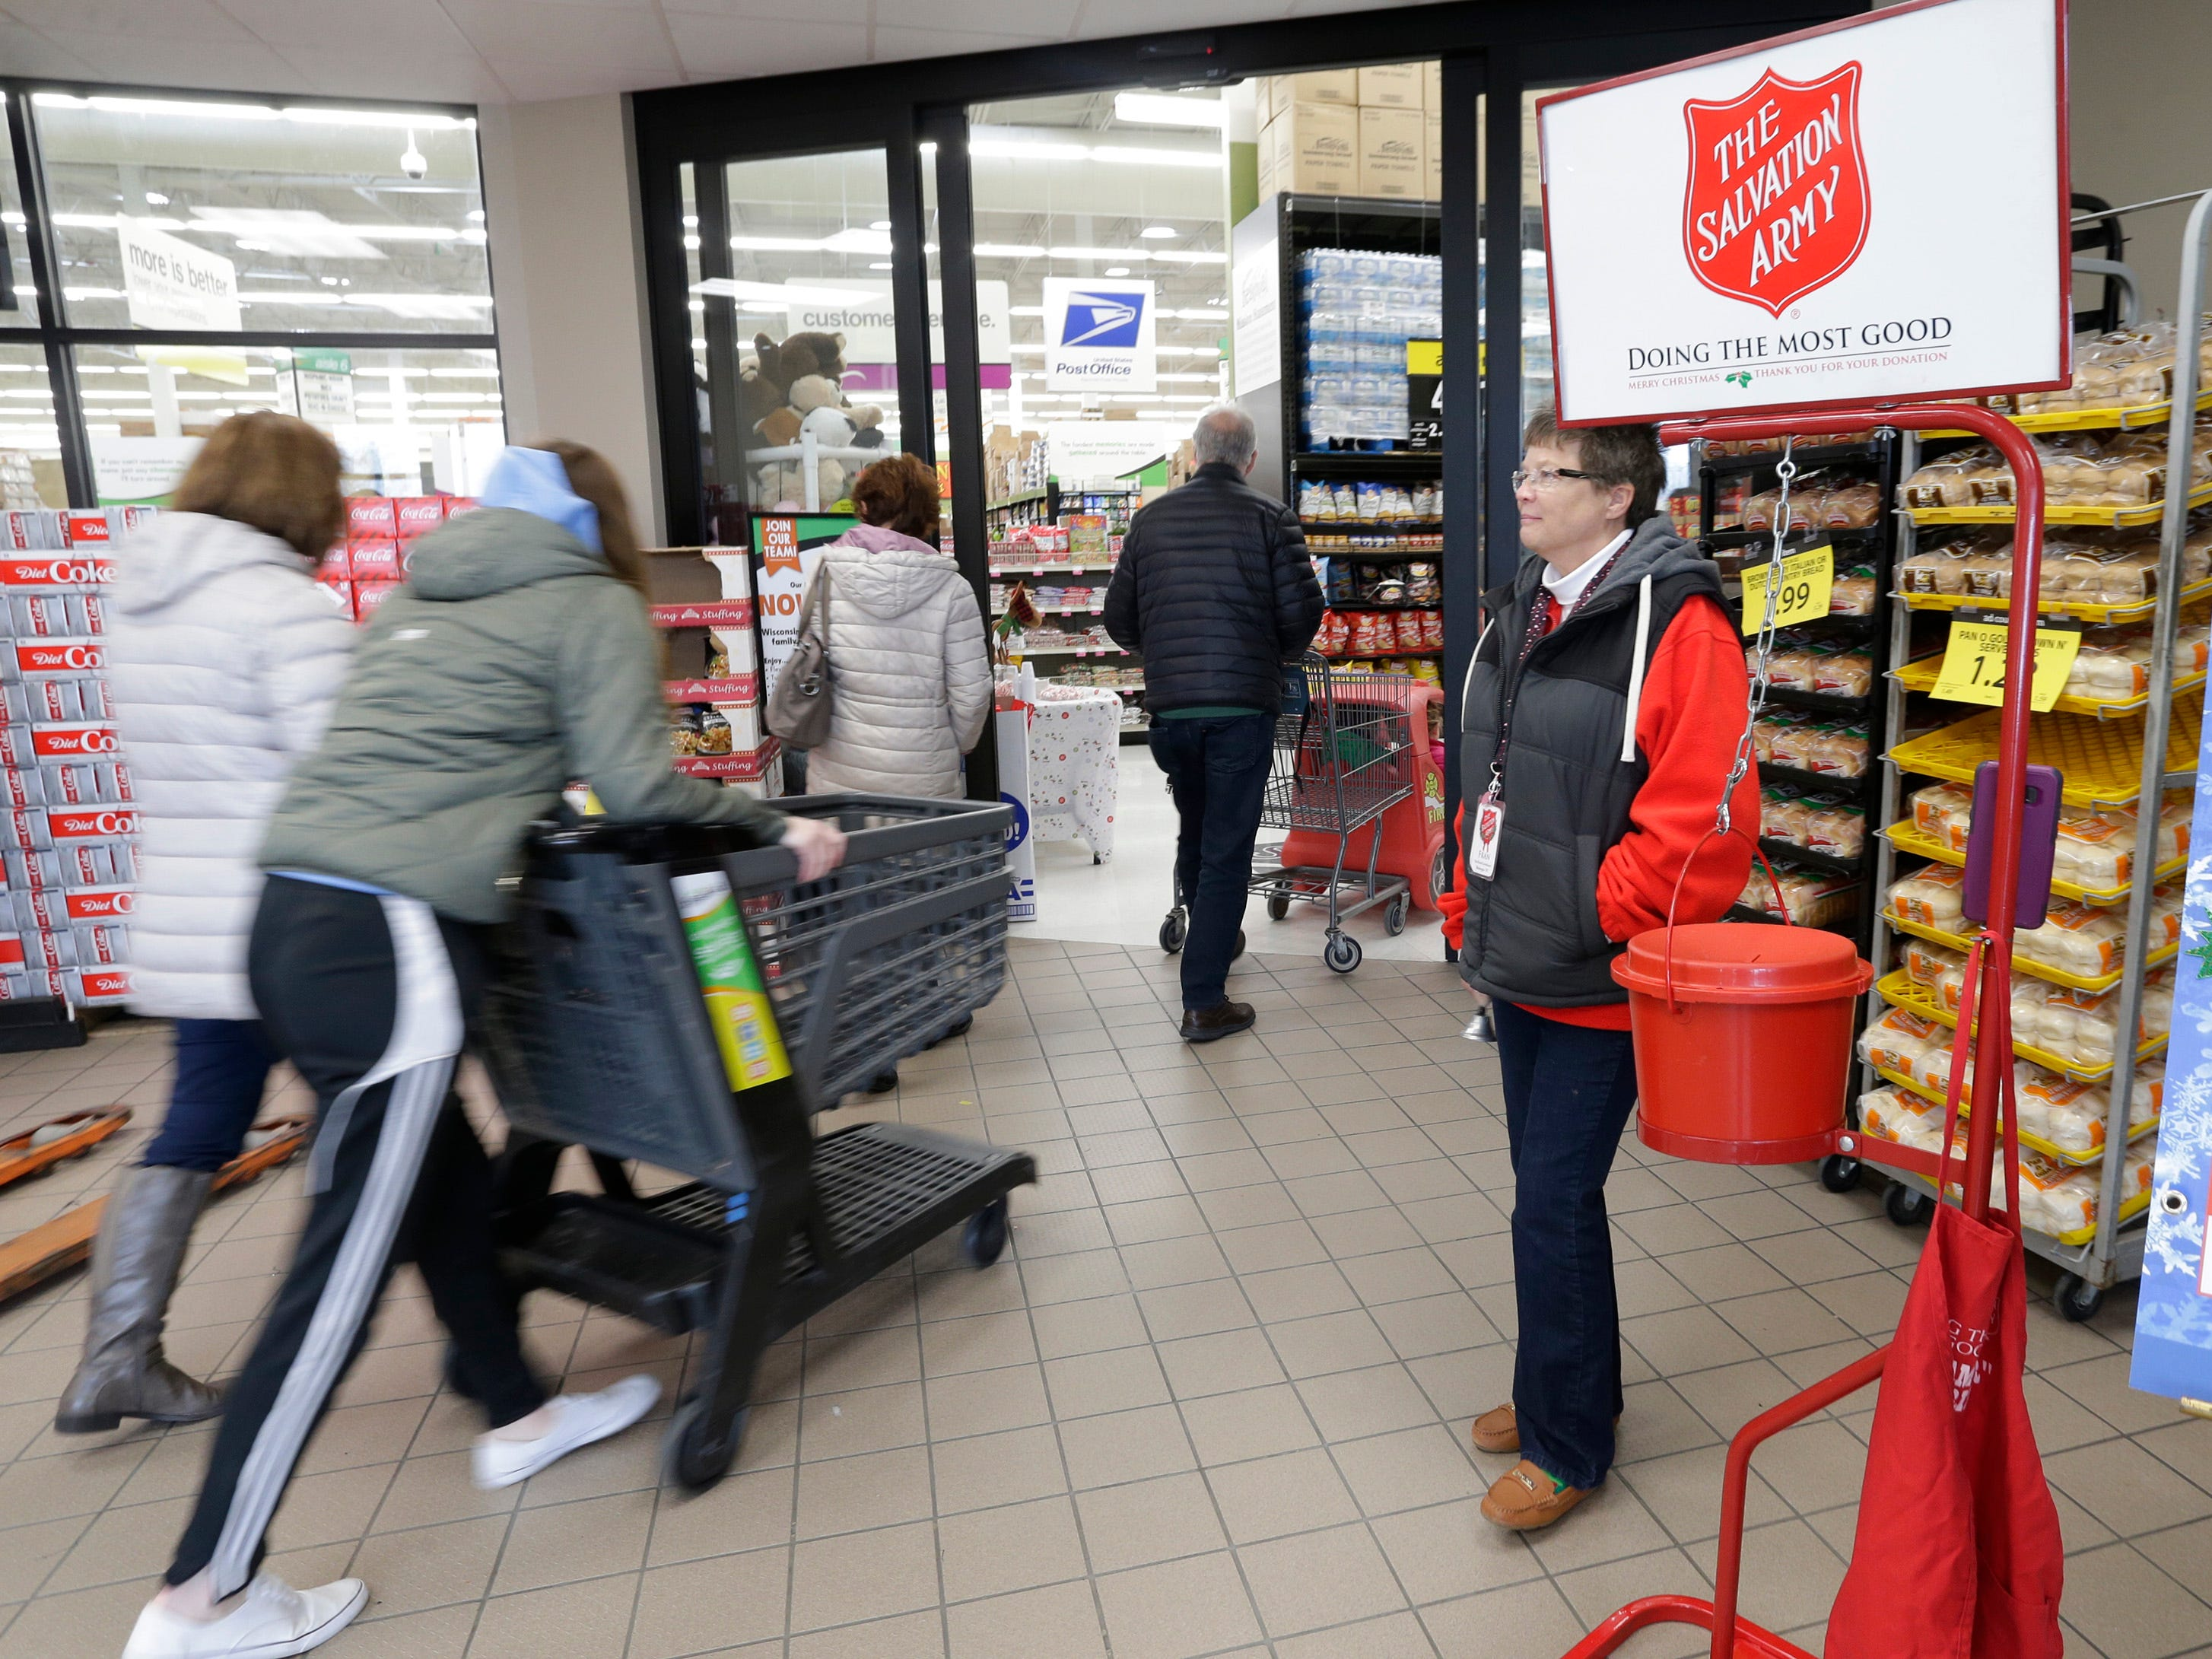 Bell Ringer Fran Schneider, rings for donations for the Salvation Army at Festival Foods, Saturday November 17, 2018, in Sheboygan, Wis.  According to the Army's Captain Daryl Mangeri, they hope to raise 611,000 via kettle proceeds and other fund raising methods for the programs the organization offers.